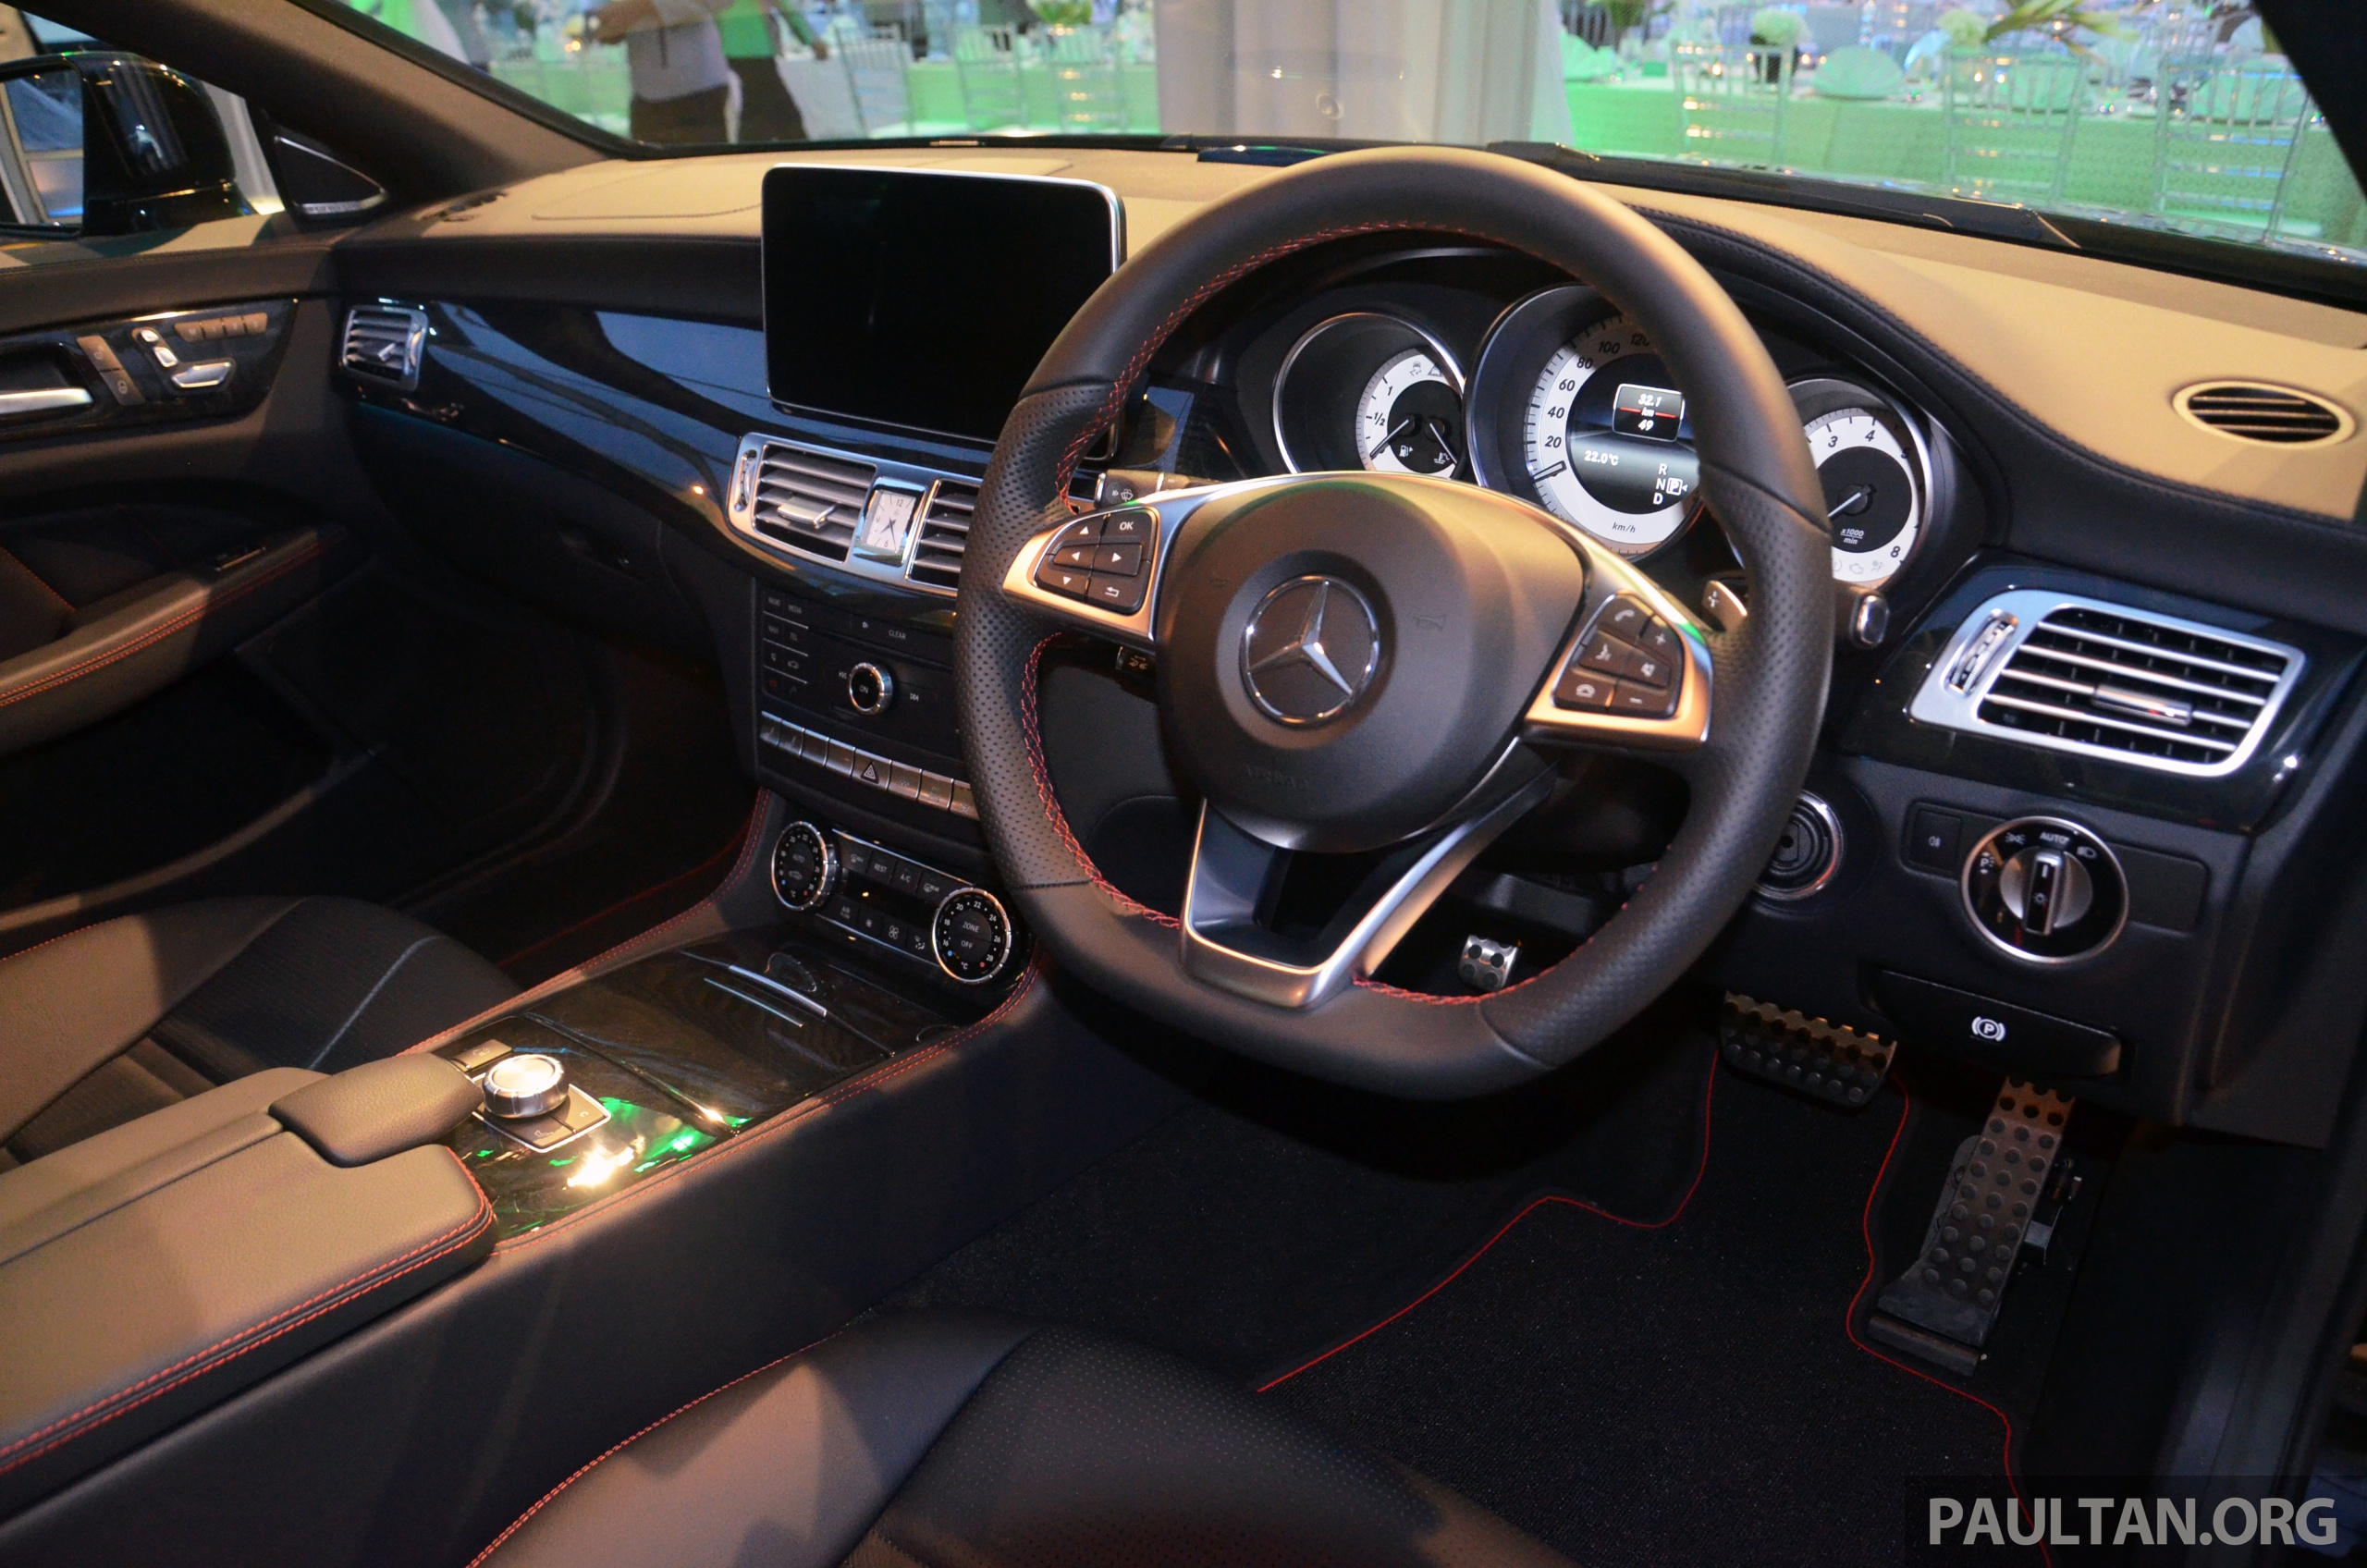 Mercedes benz cls 400 facelift previewed in malaysia image 321392